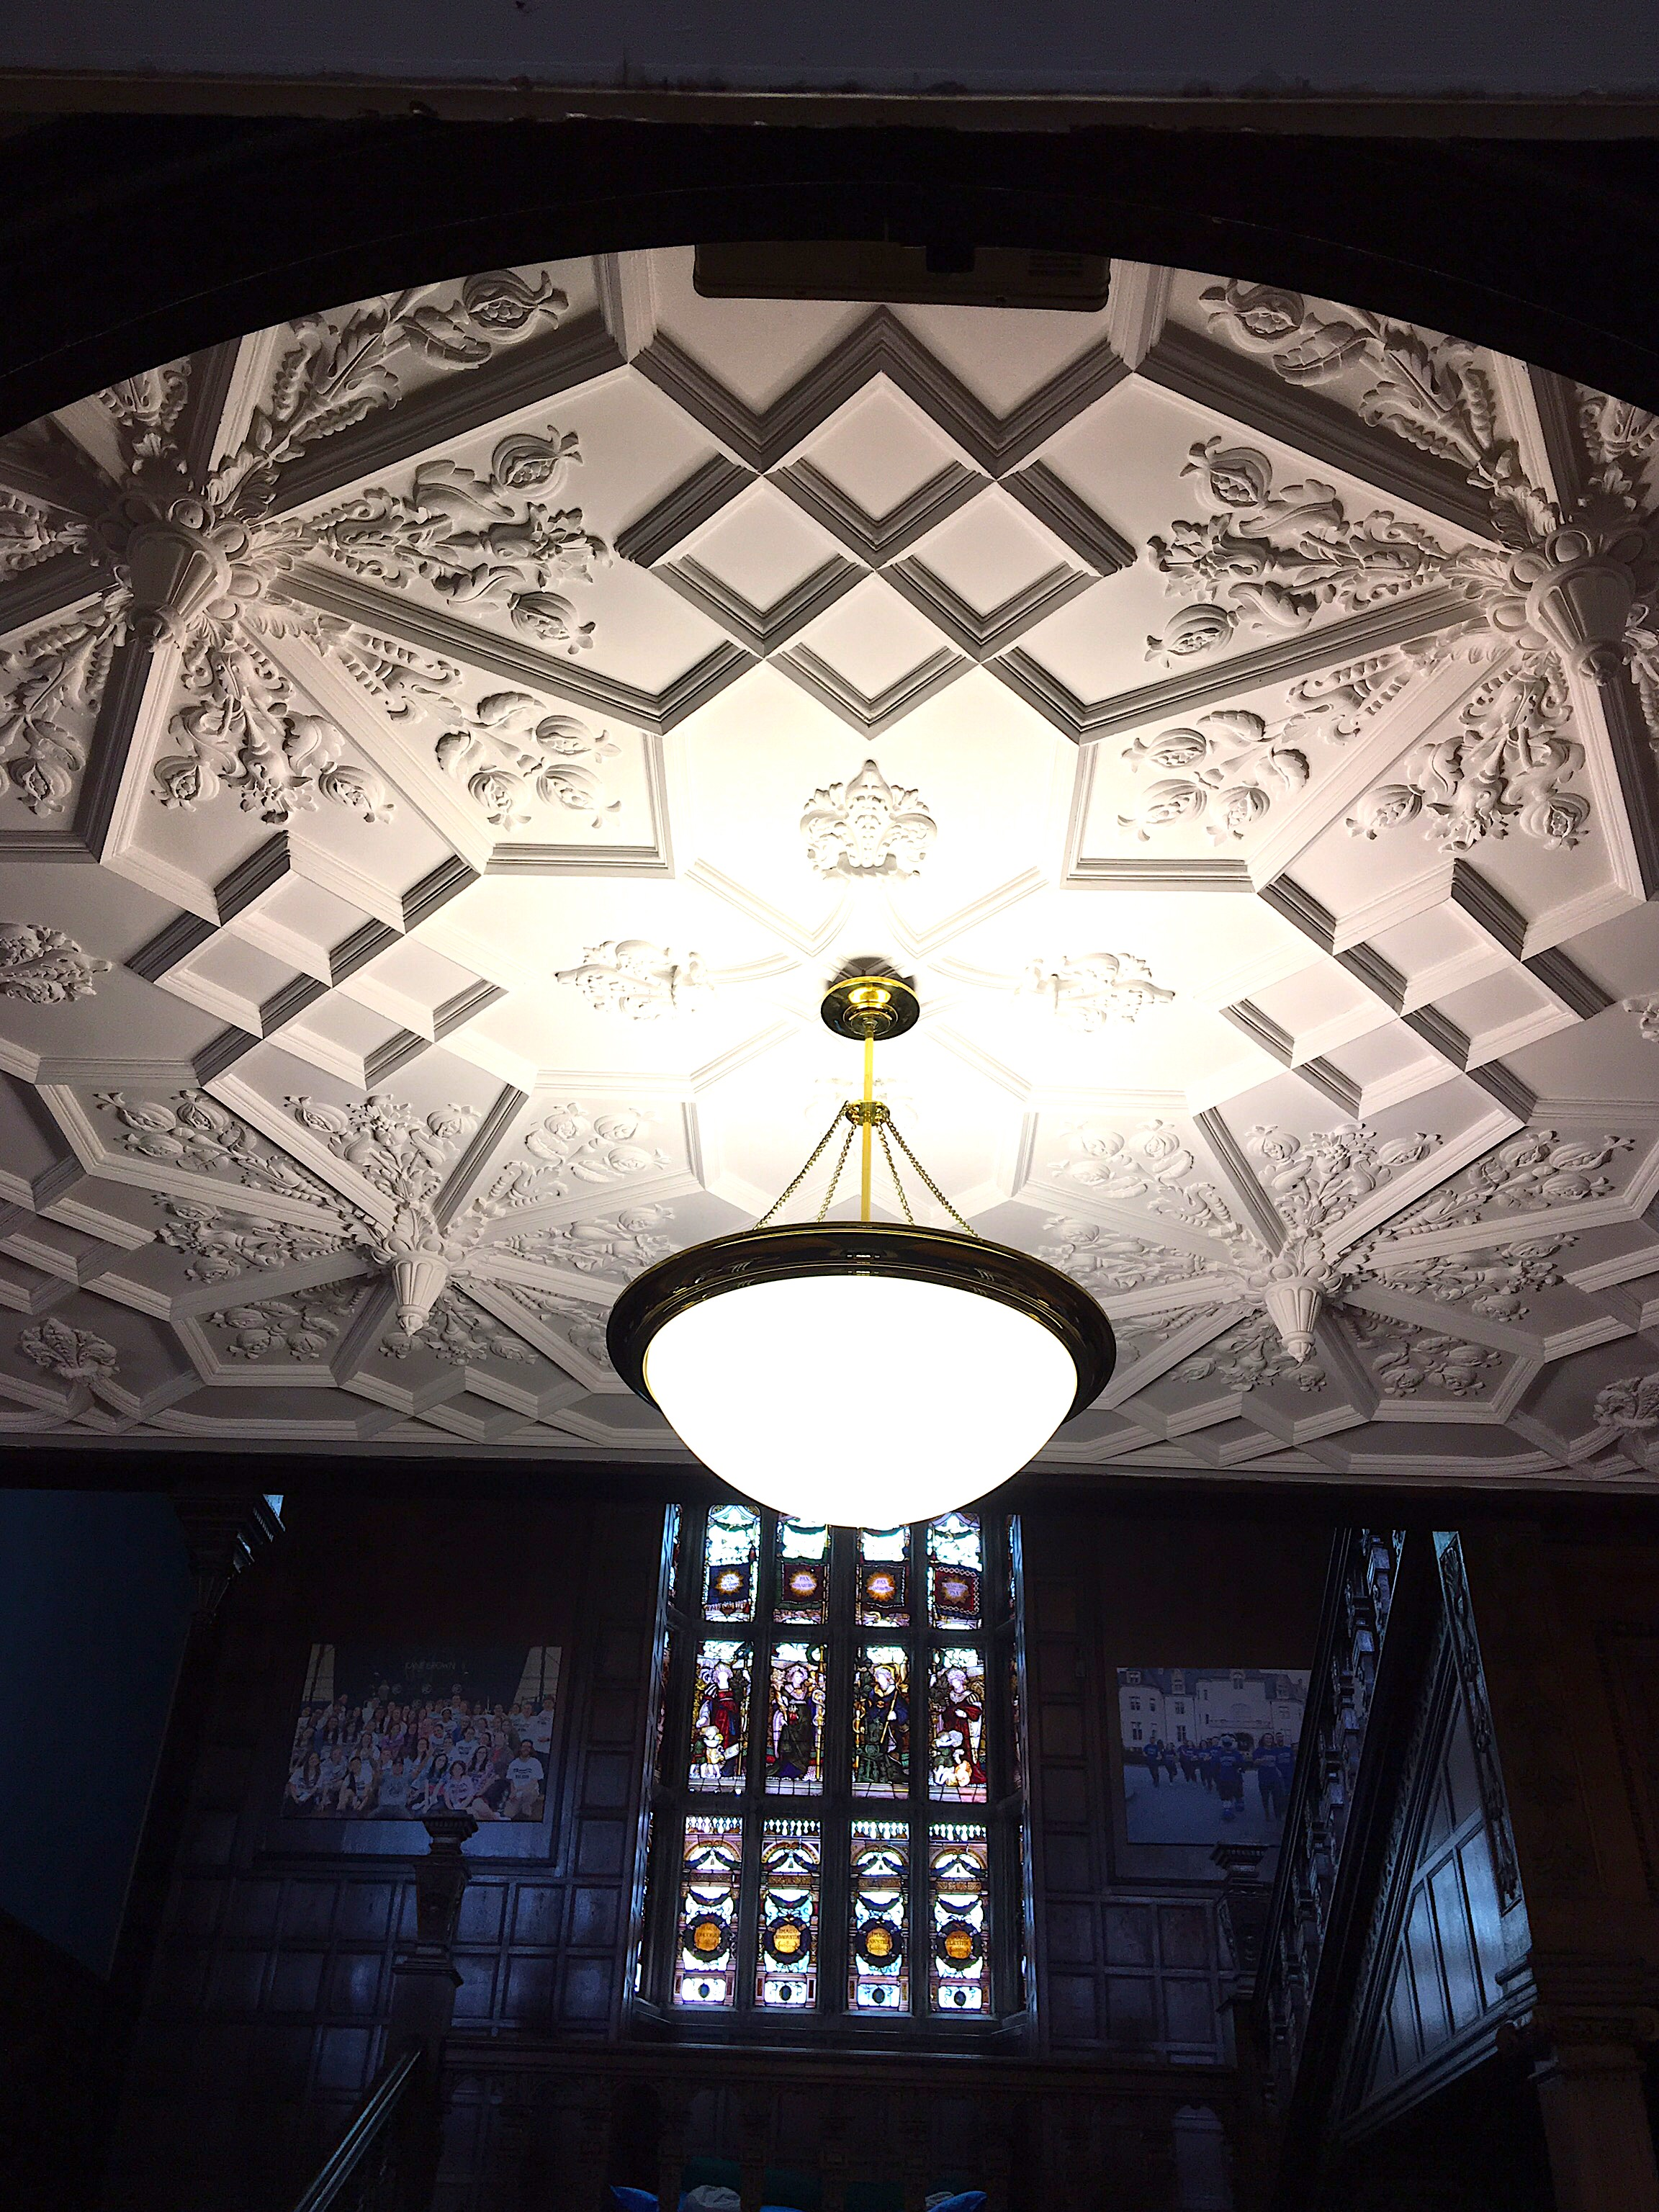 Gothic Revival Style ceiling by Dudley Newton with stained glass windows by Charles Kempe in the background